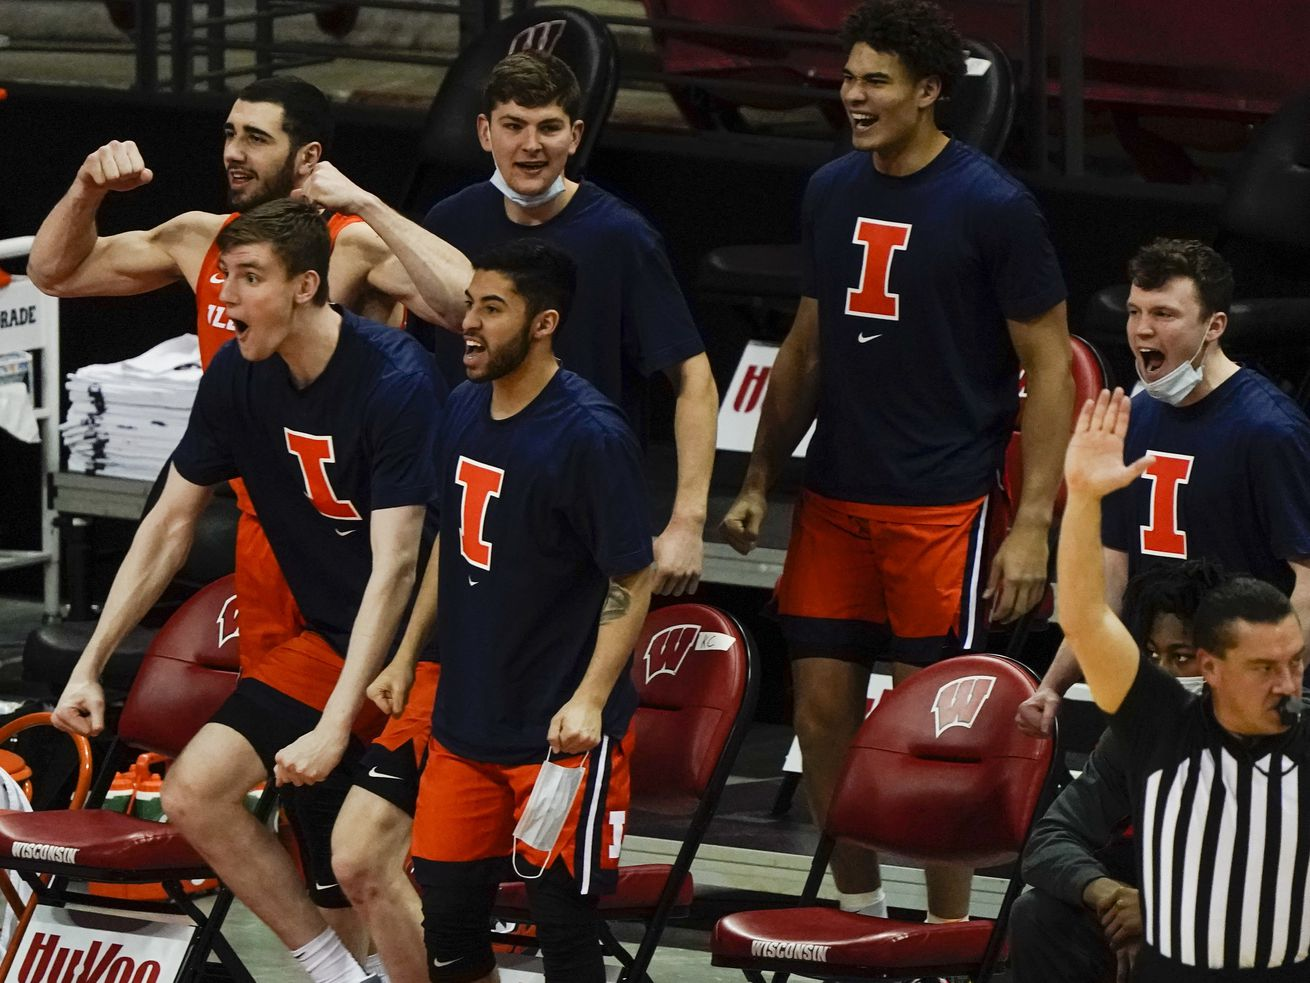 Illinois moved up to No. 4 in the new AP Top 25 poll.